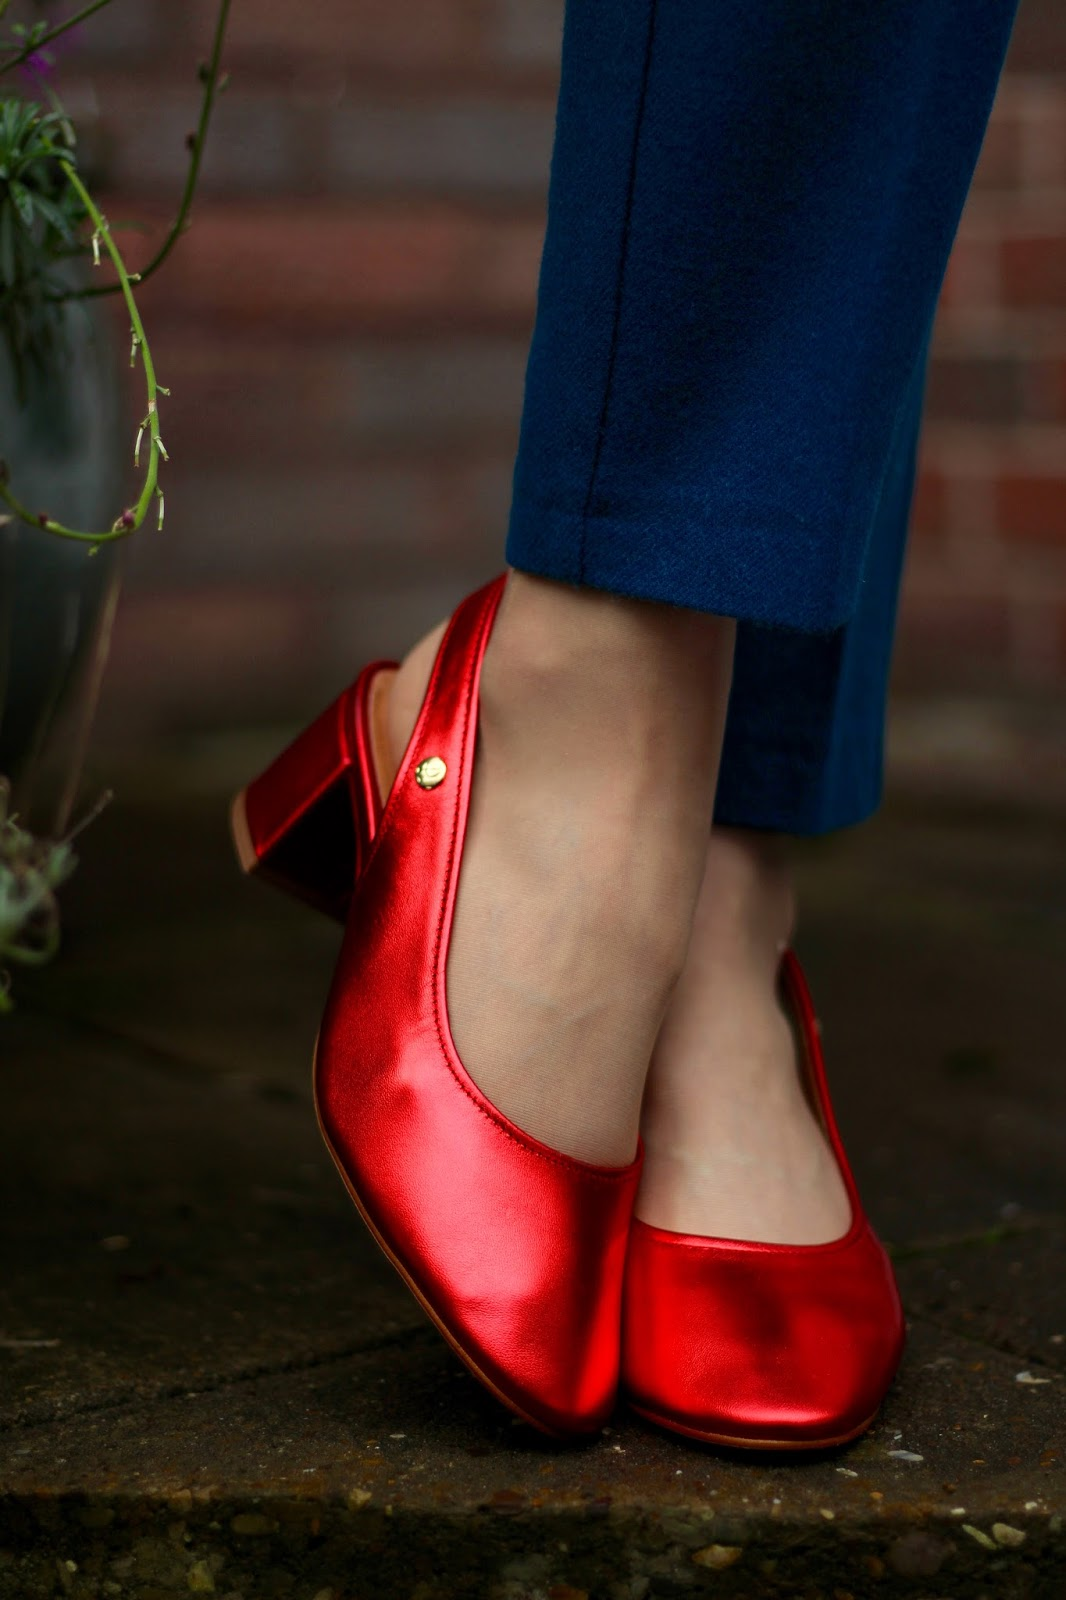 Metallic Red Slingback Nana Shoes & Teal Wool Trousers | Fake Fabulous